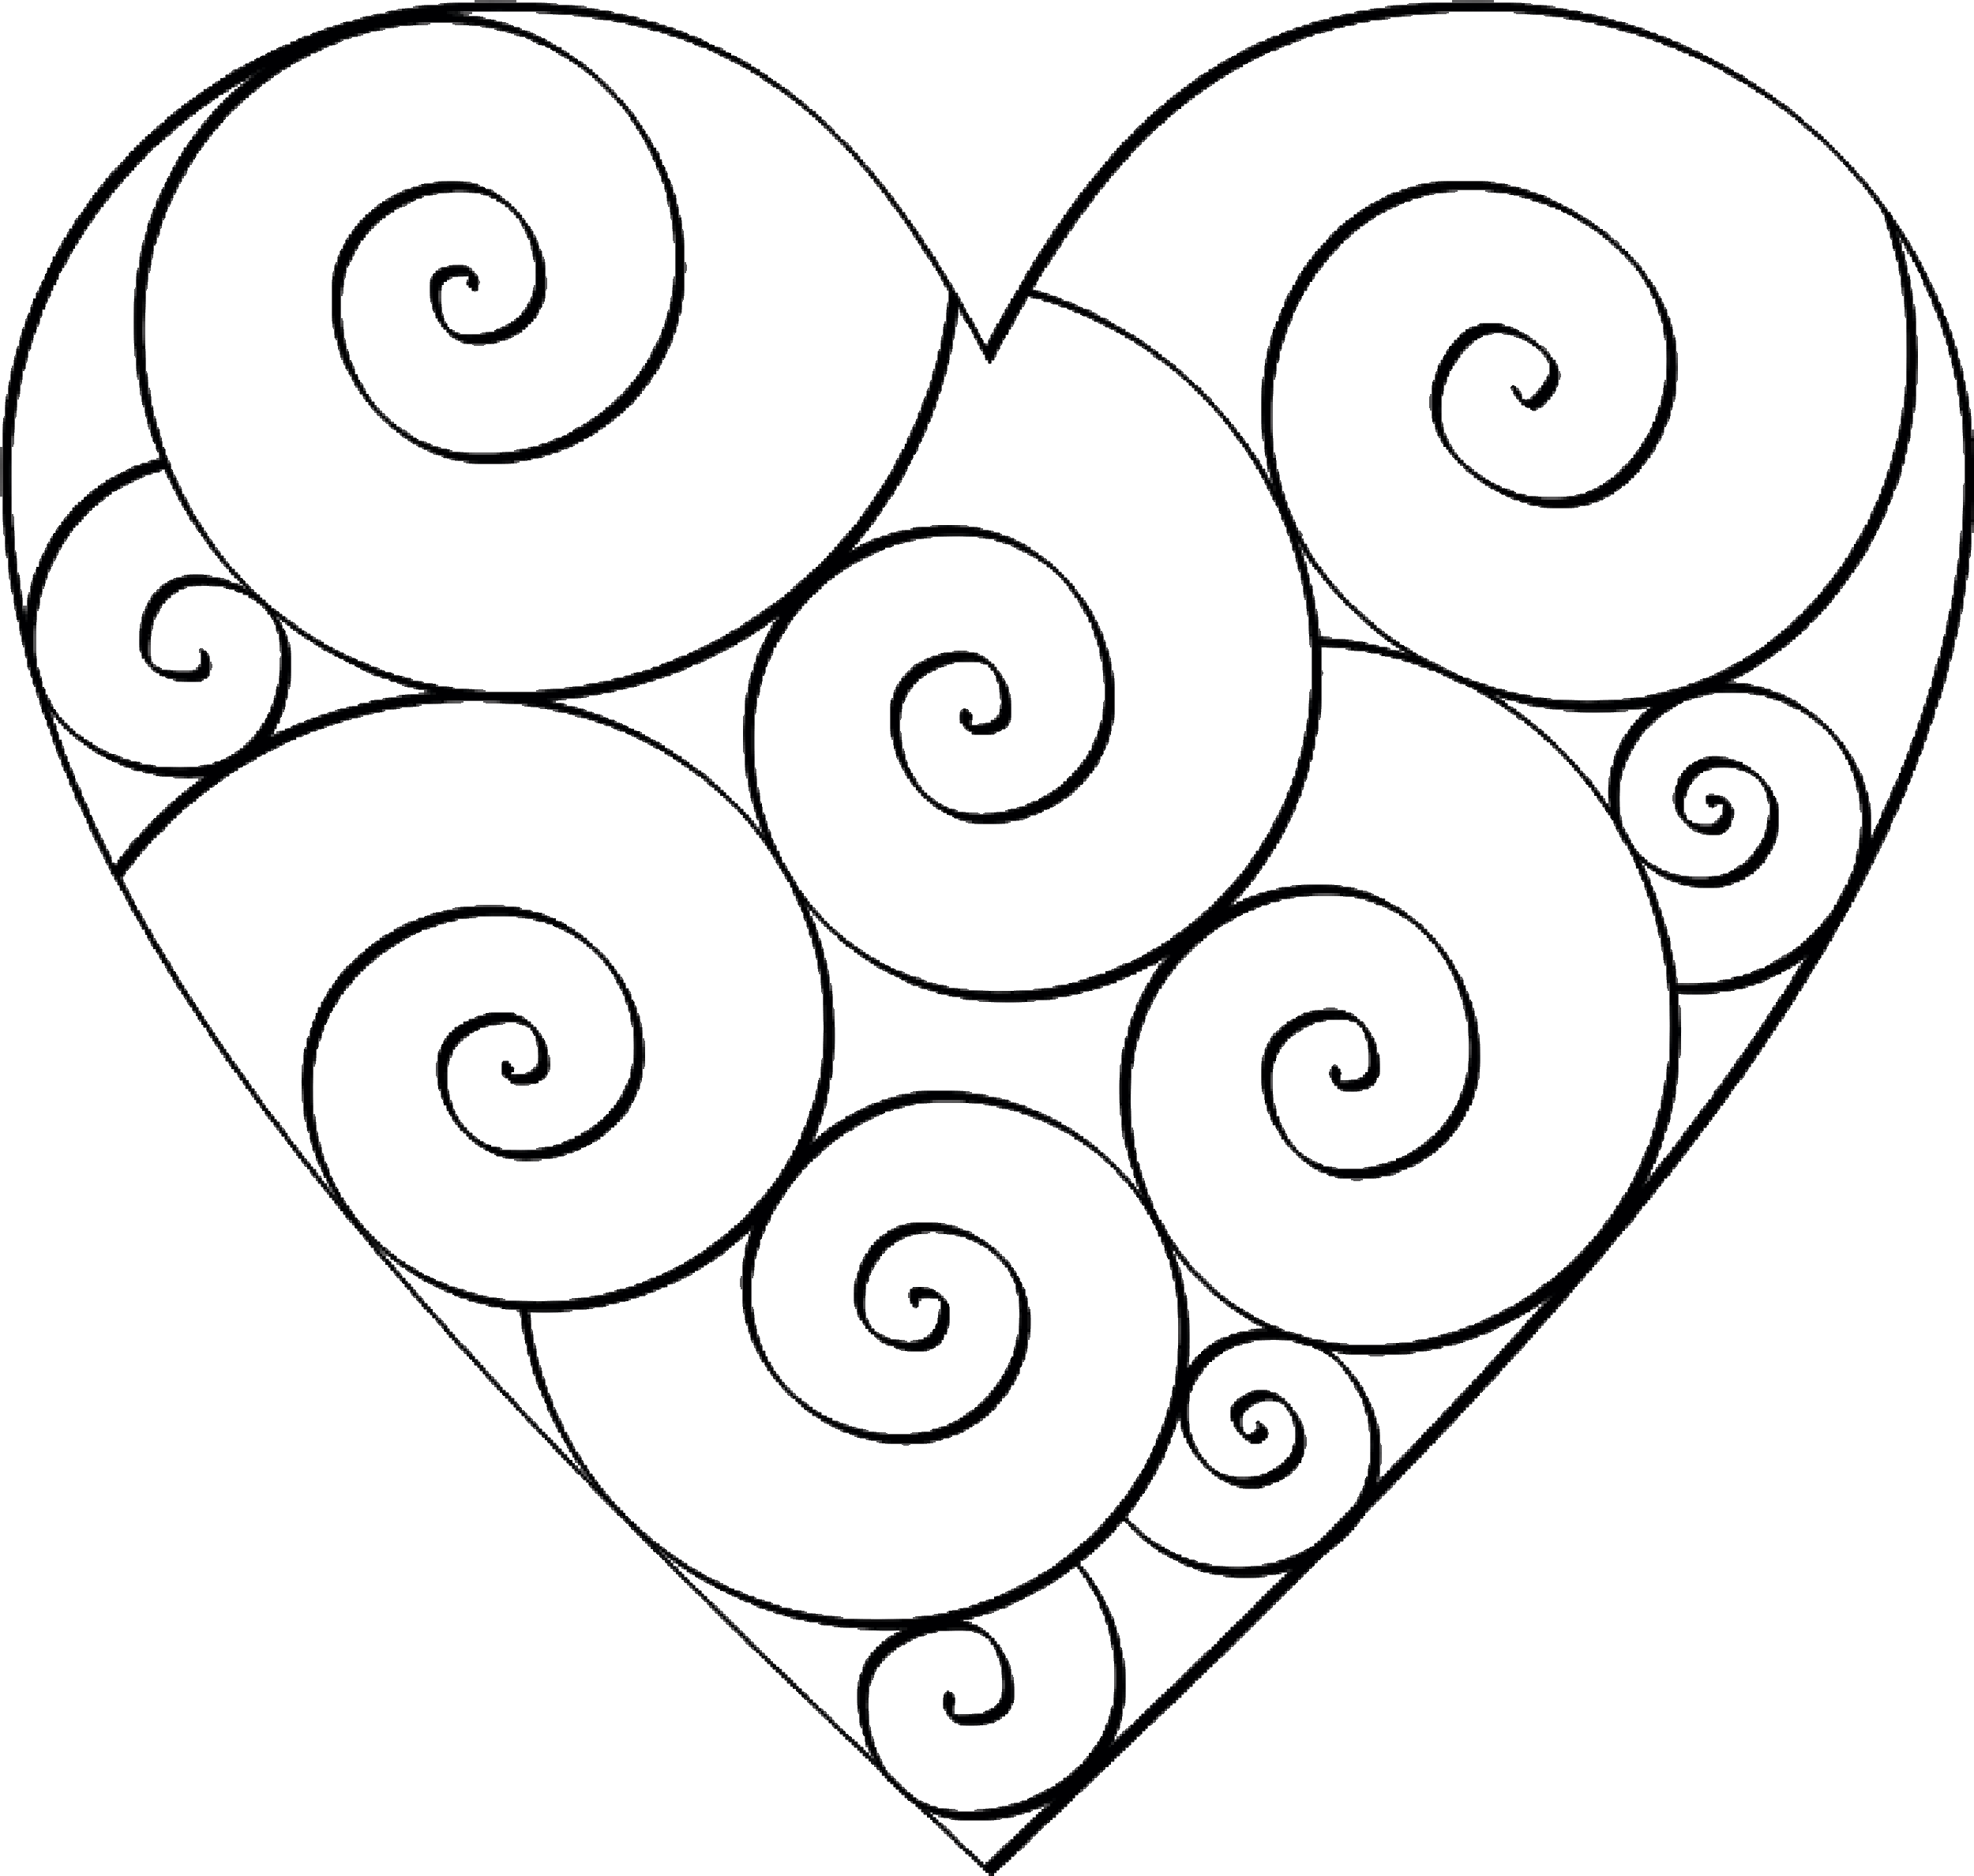 free printable heart coloring pages for kids free printable heart coloring pages for kids free for pages printable coloring heart kids